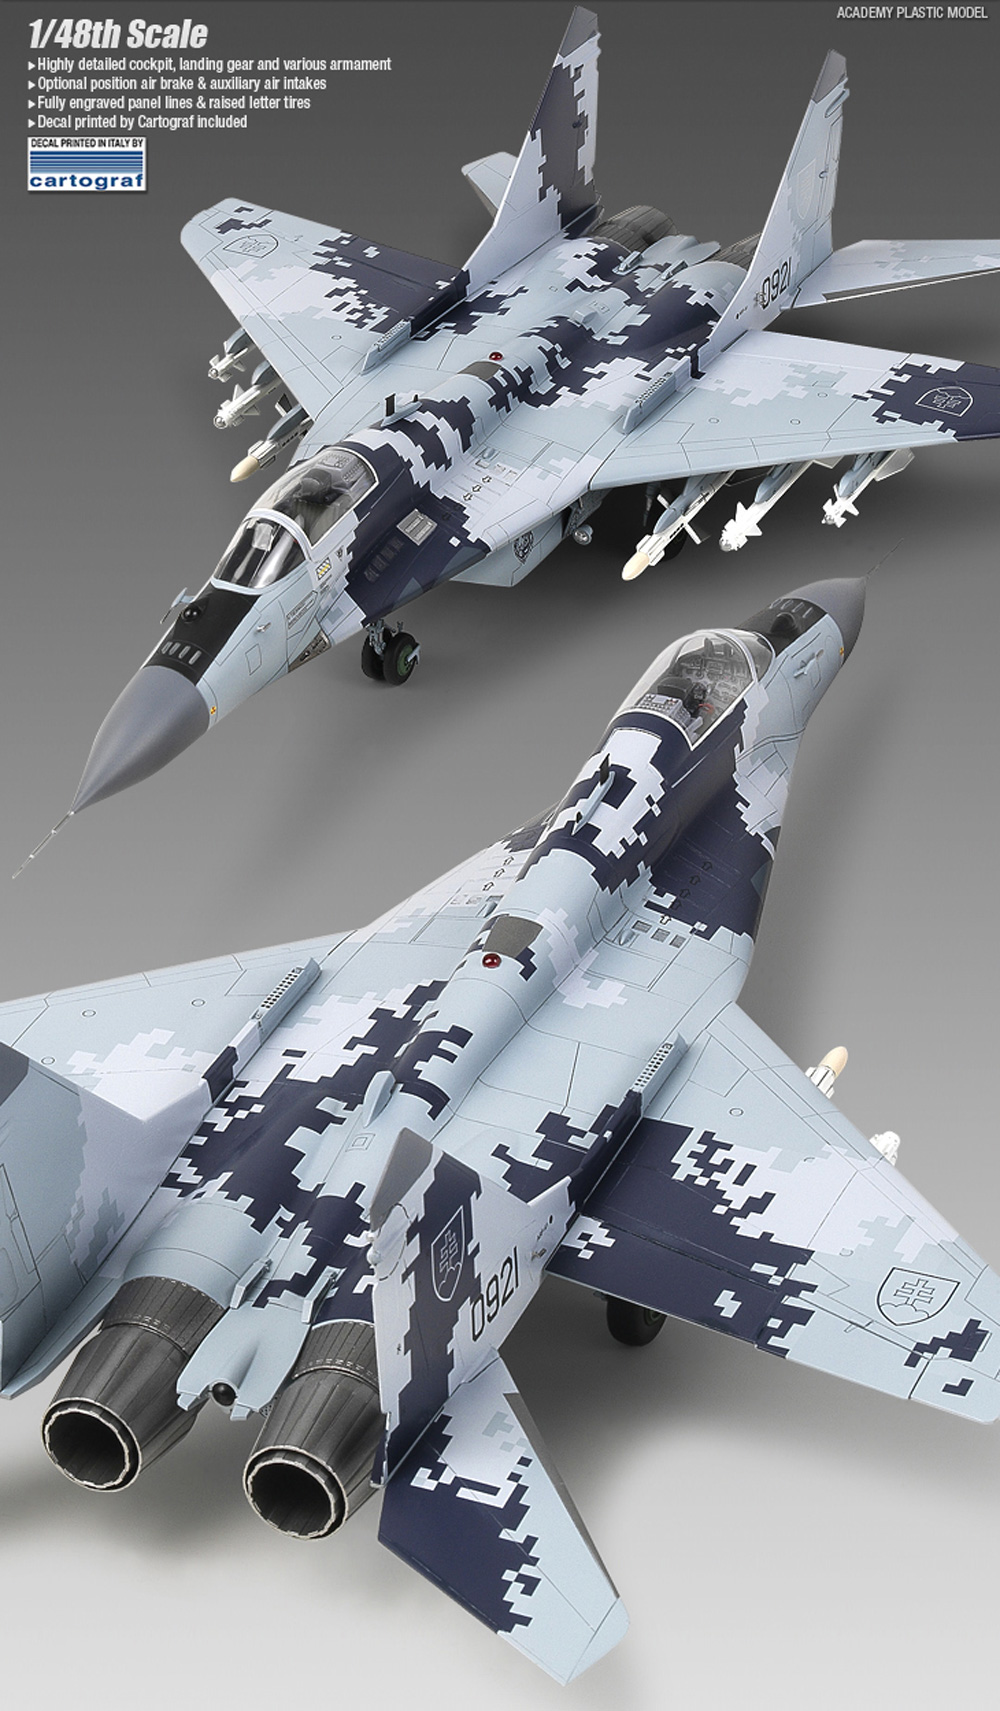 MiG-29AS スロヴァキア空軍 プラモデル (アカデミー 1/48 Aircrafts No.12227) 商品画像_2